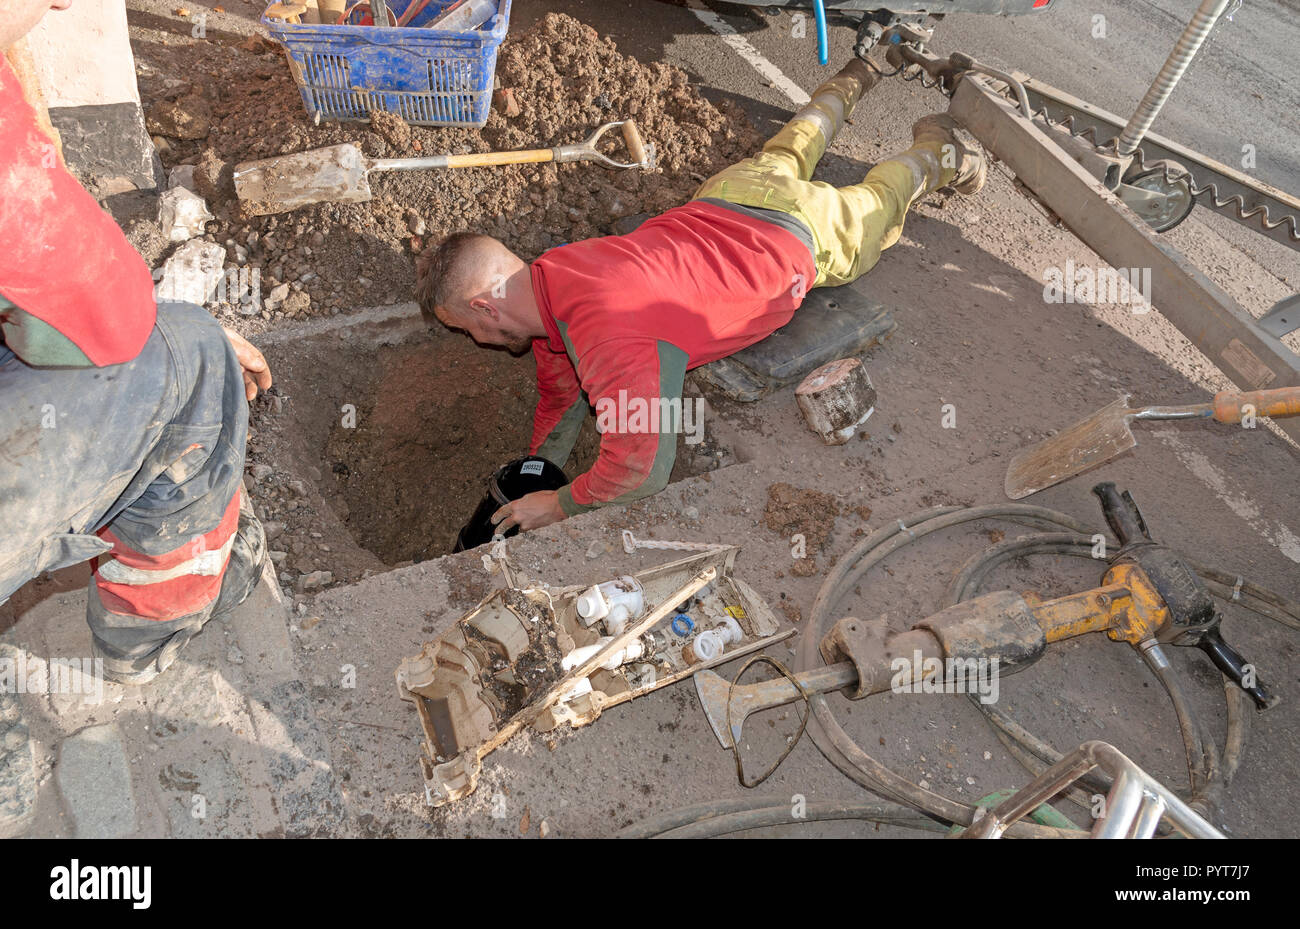 Installing a new water meter in the road. UK. Worker working face down installs the new black plastic meter housing. - Stock Image